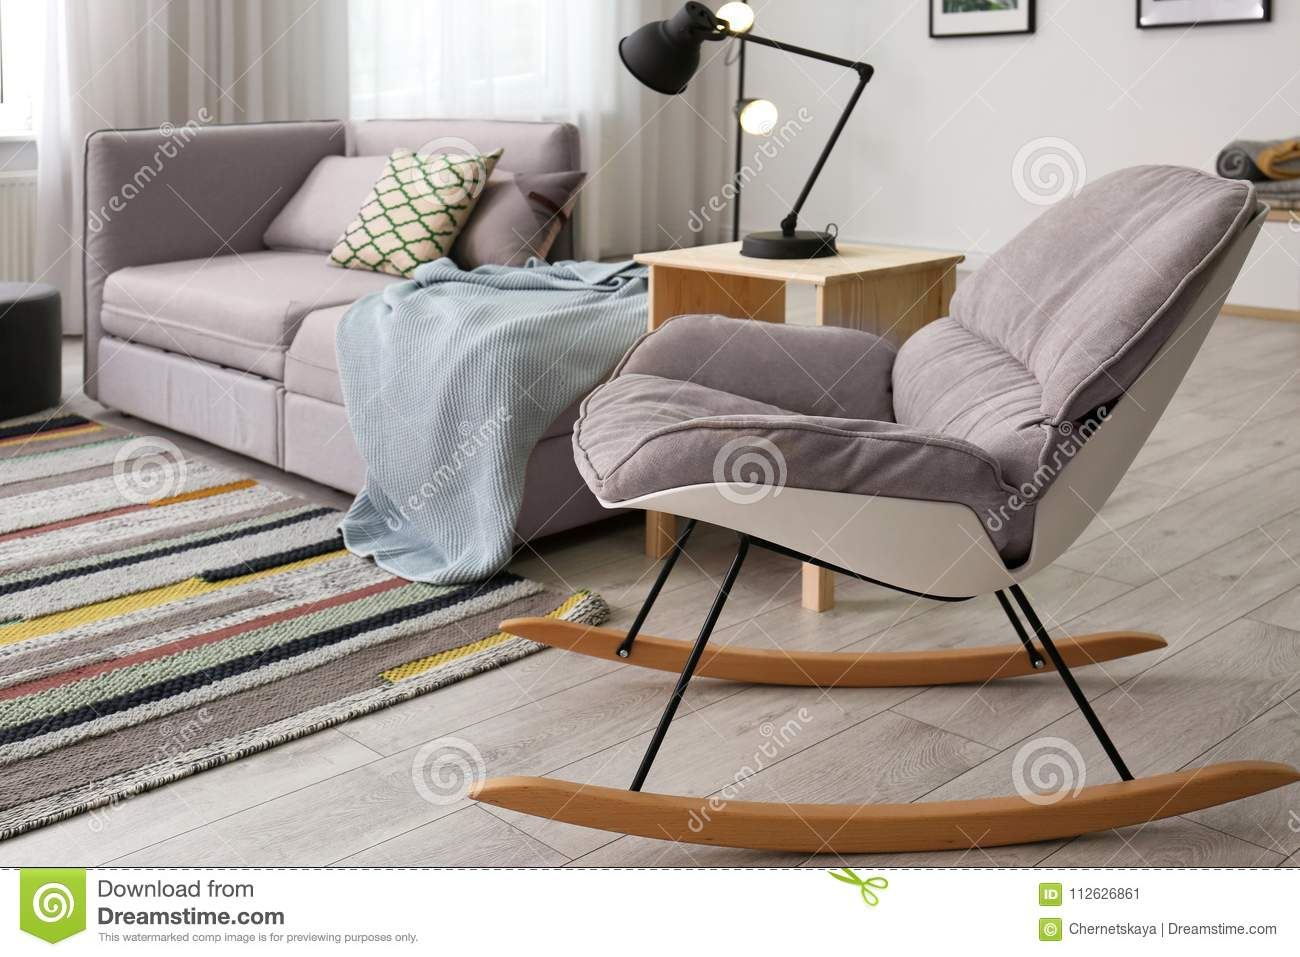 Stylish Living Room Interior With Rocking Chair Stock Image Image Of Leisure Floor 112626861